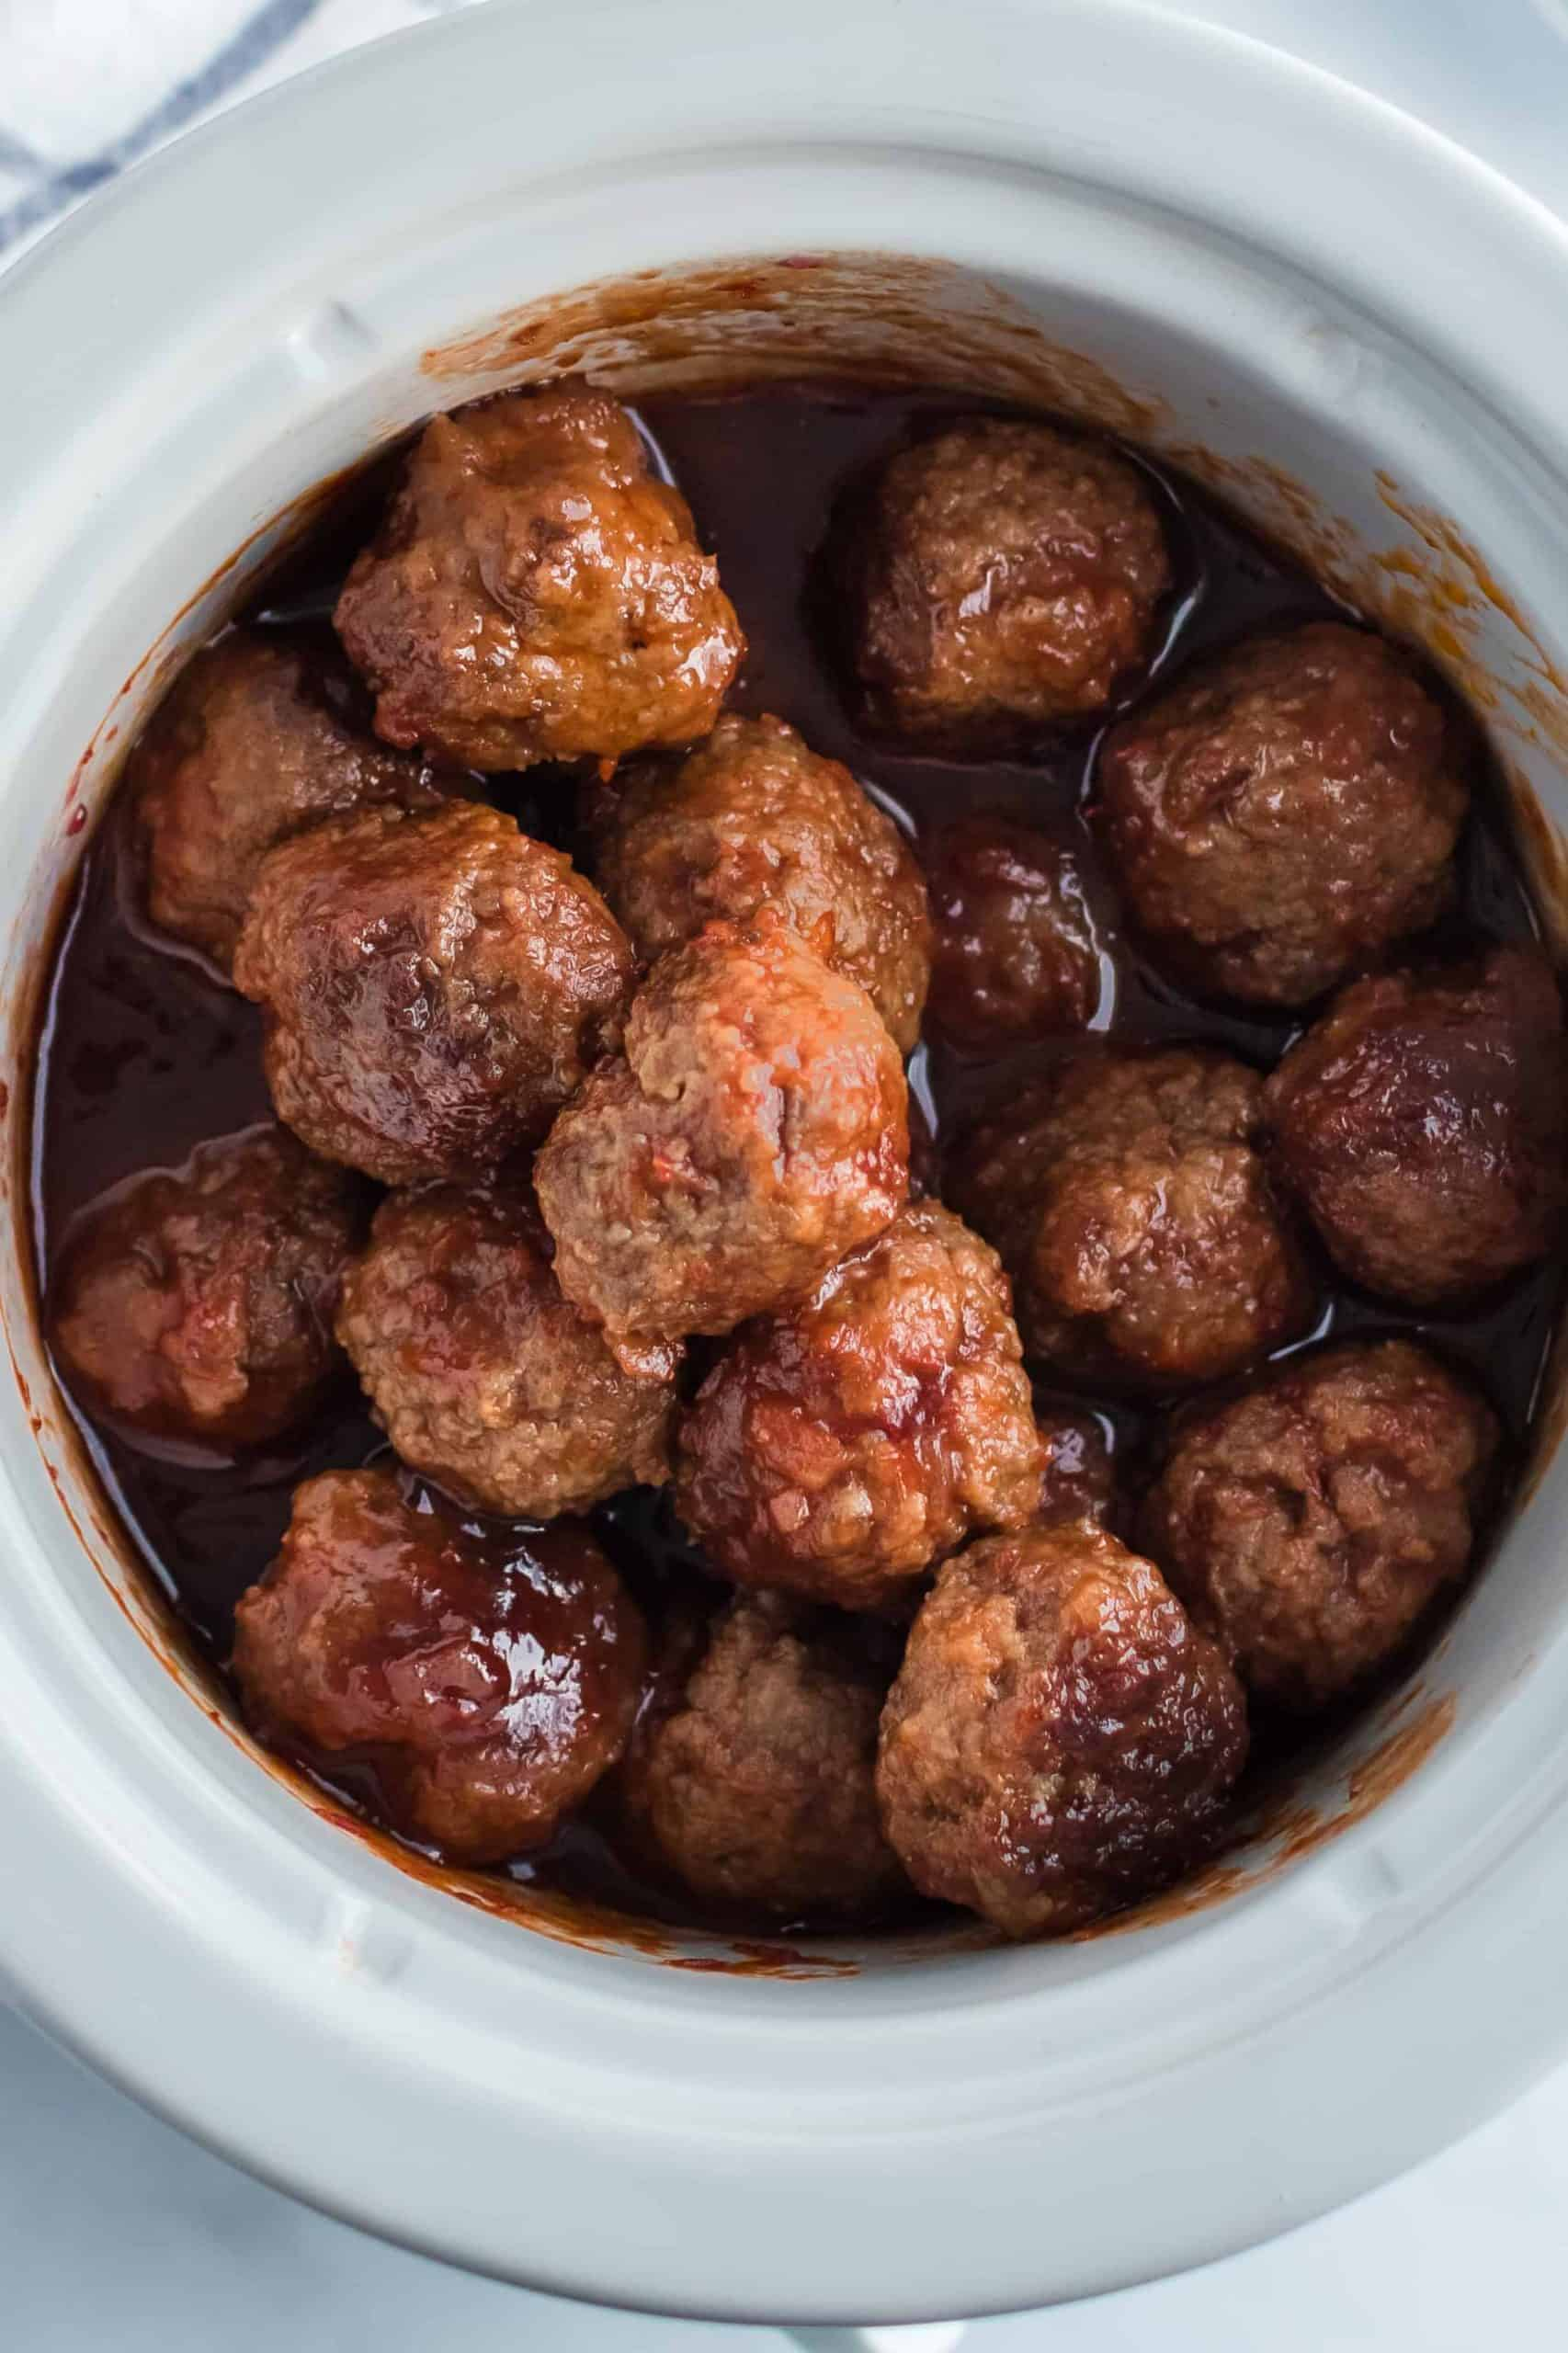 Easy 3 Ingredient Grape Jelly Meatballs In The Crockpot Recipe